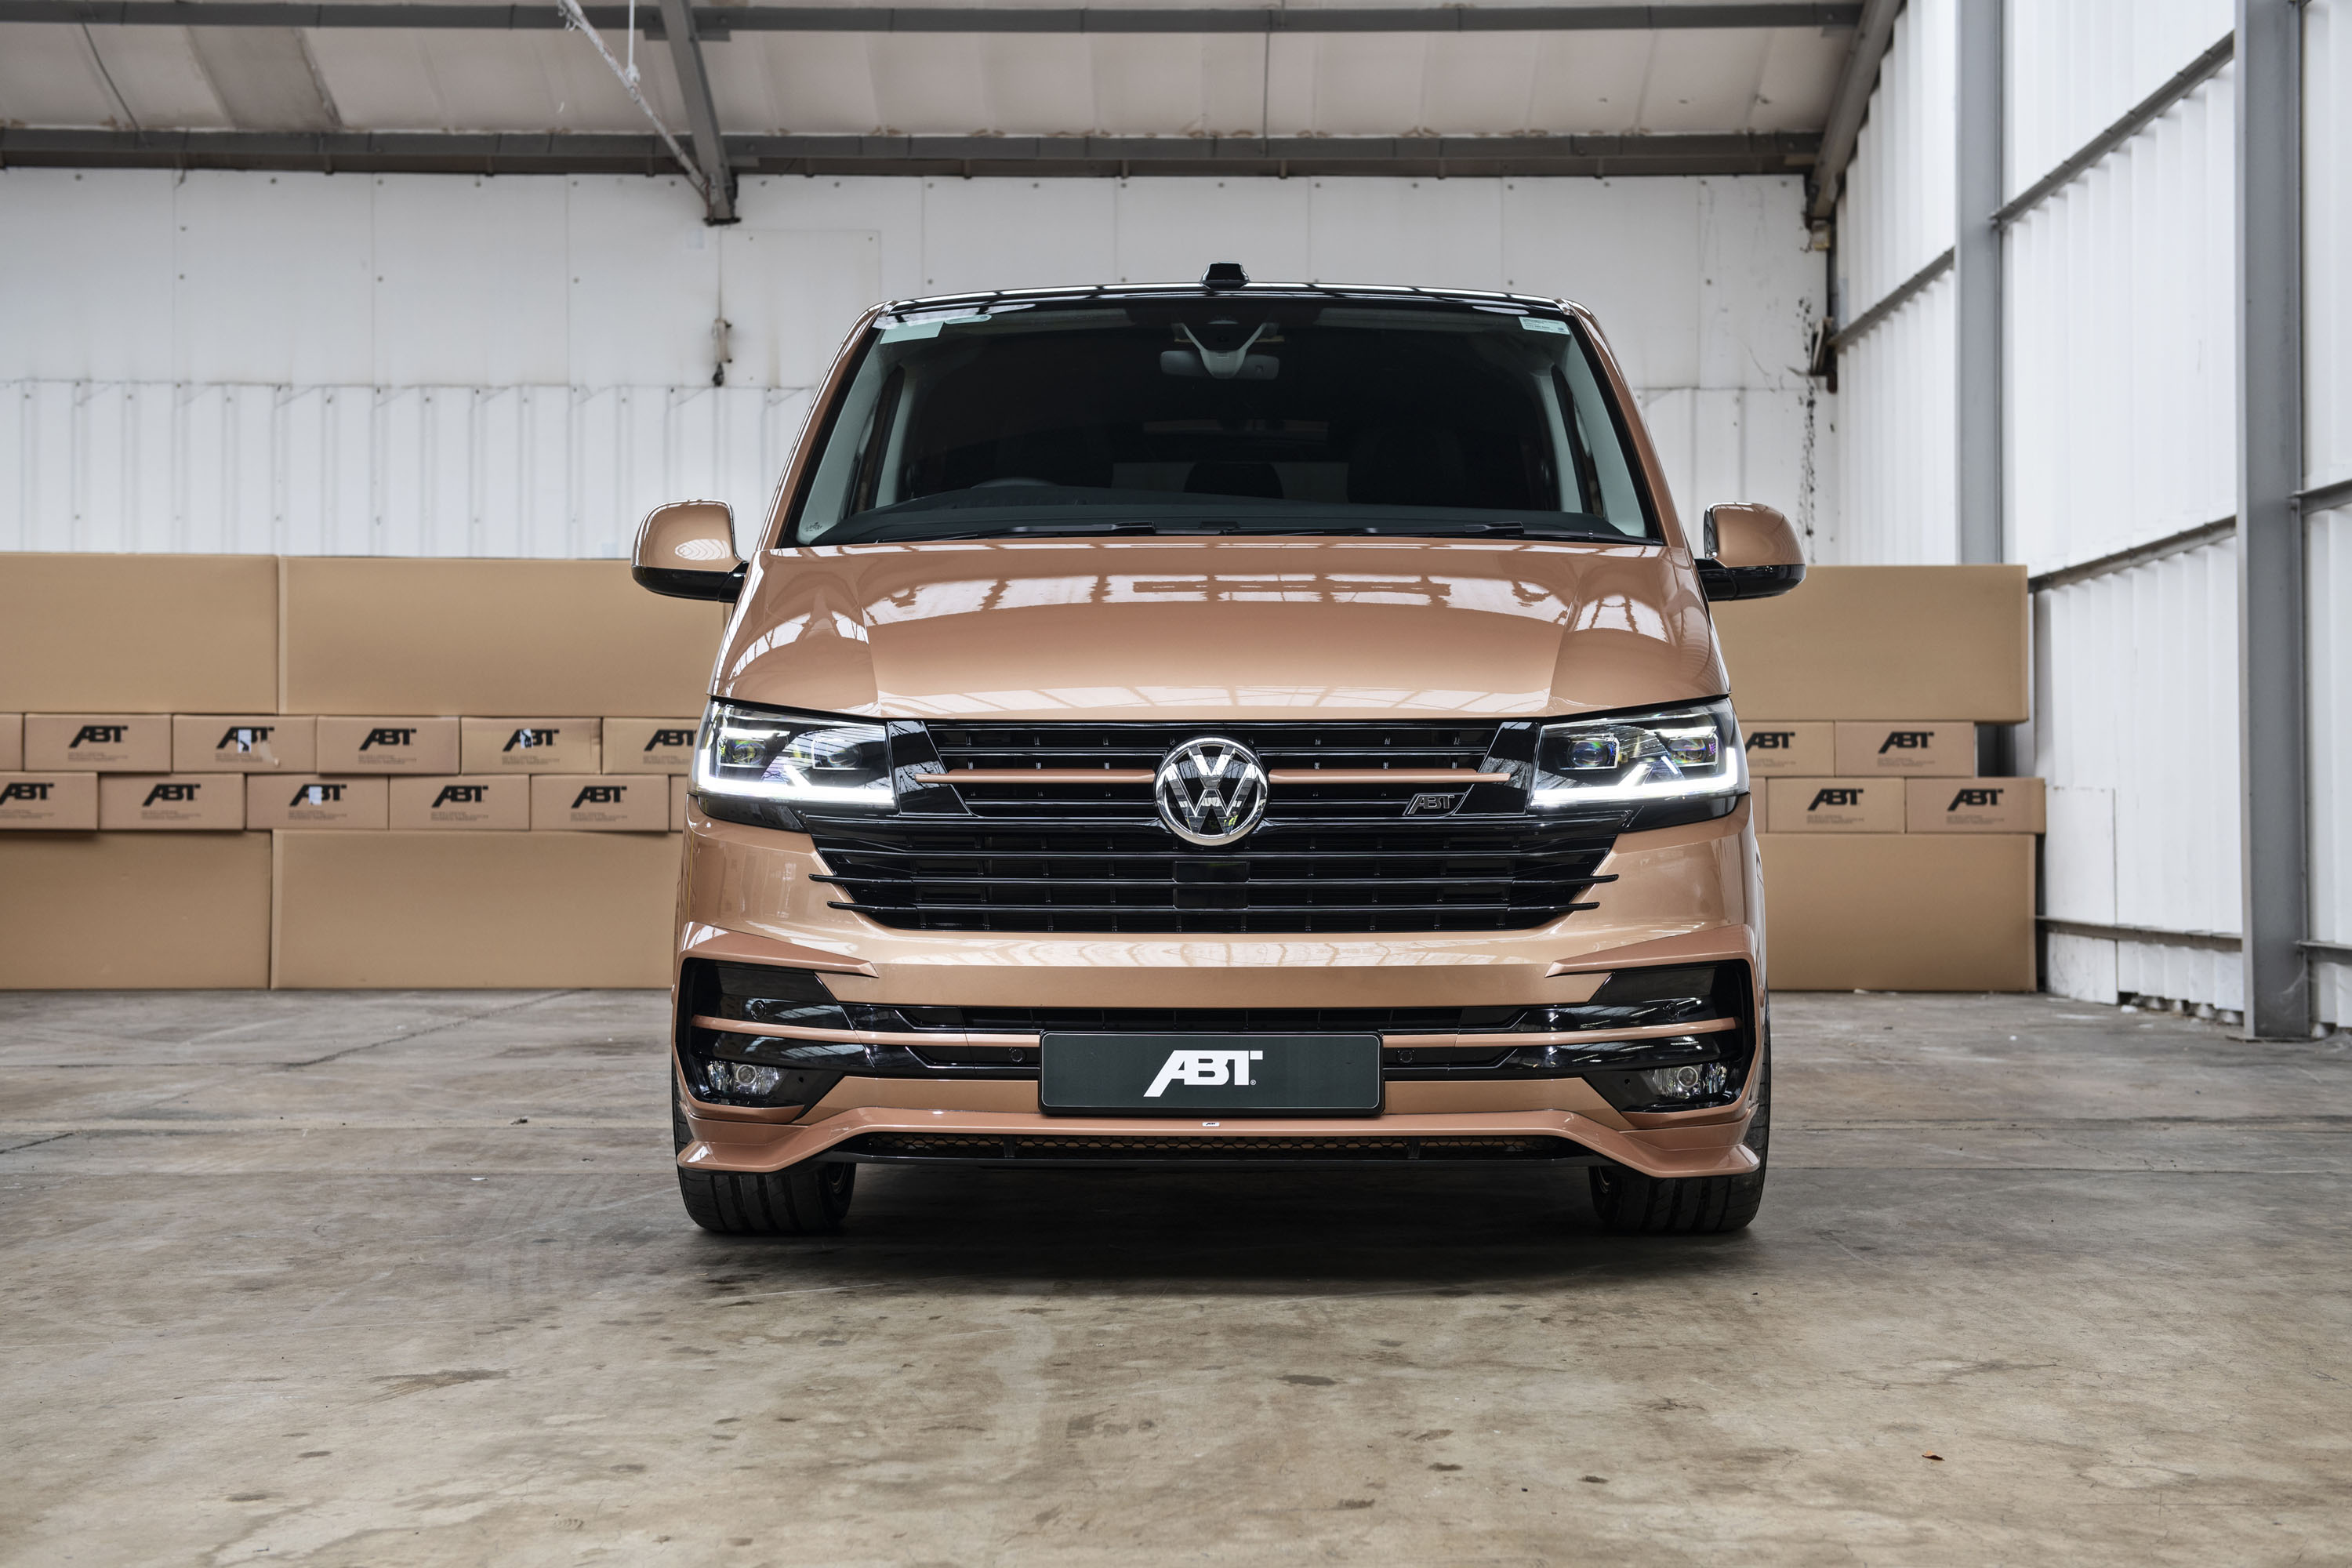 ABT VW T6.1 Aero Package photo #1